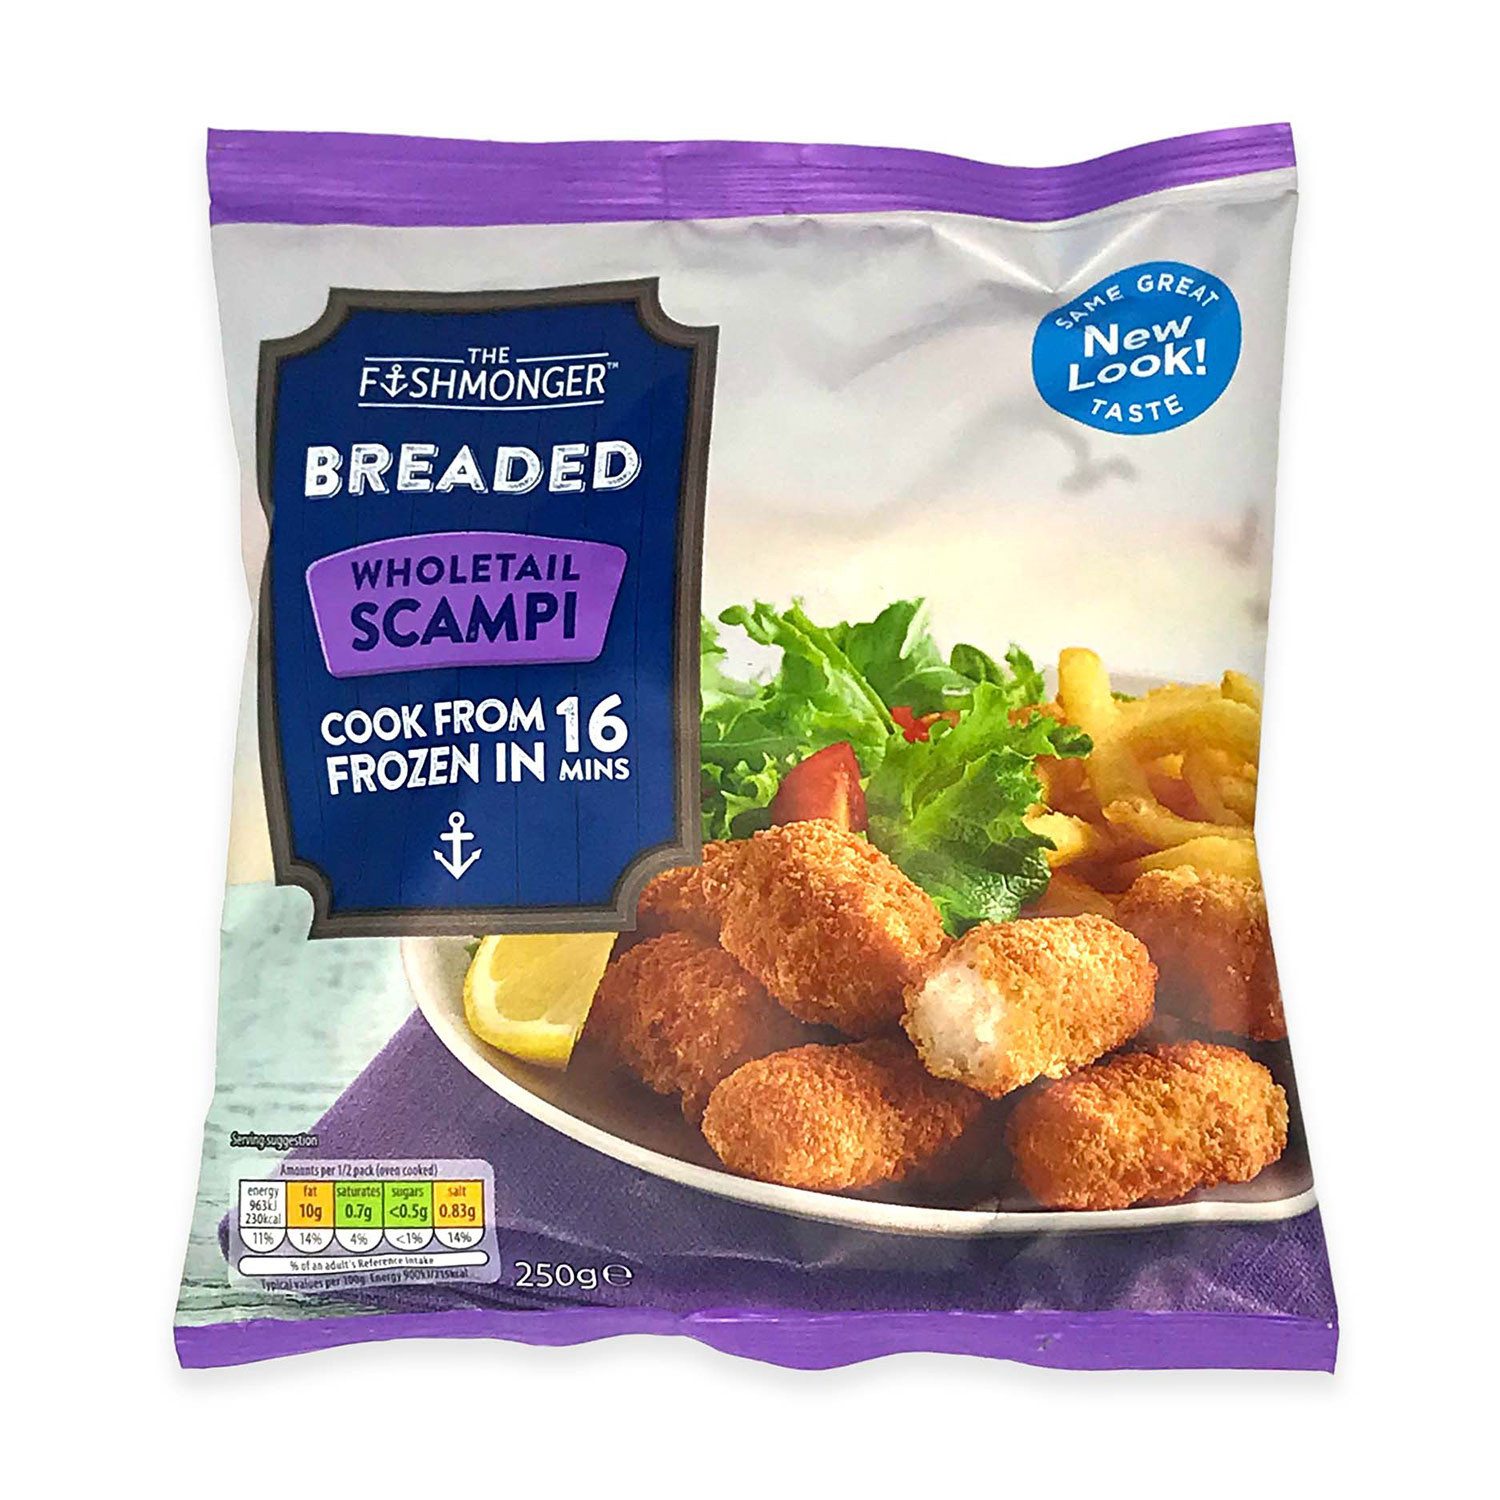 Breaded Wholetail Scampi